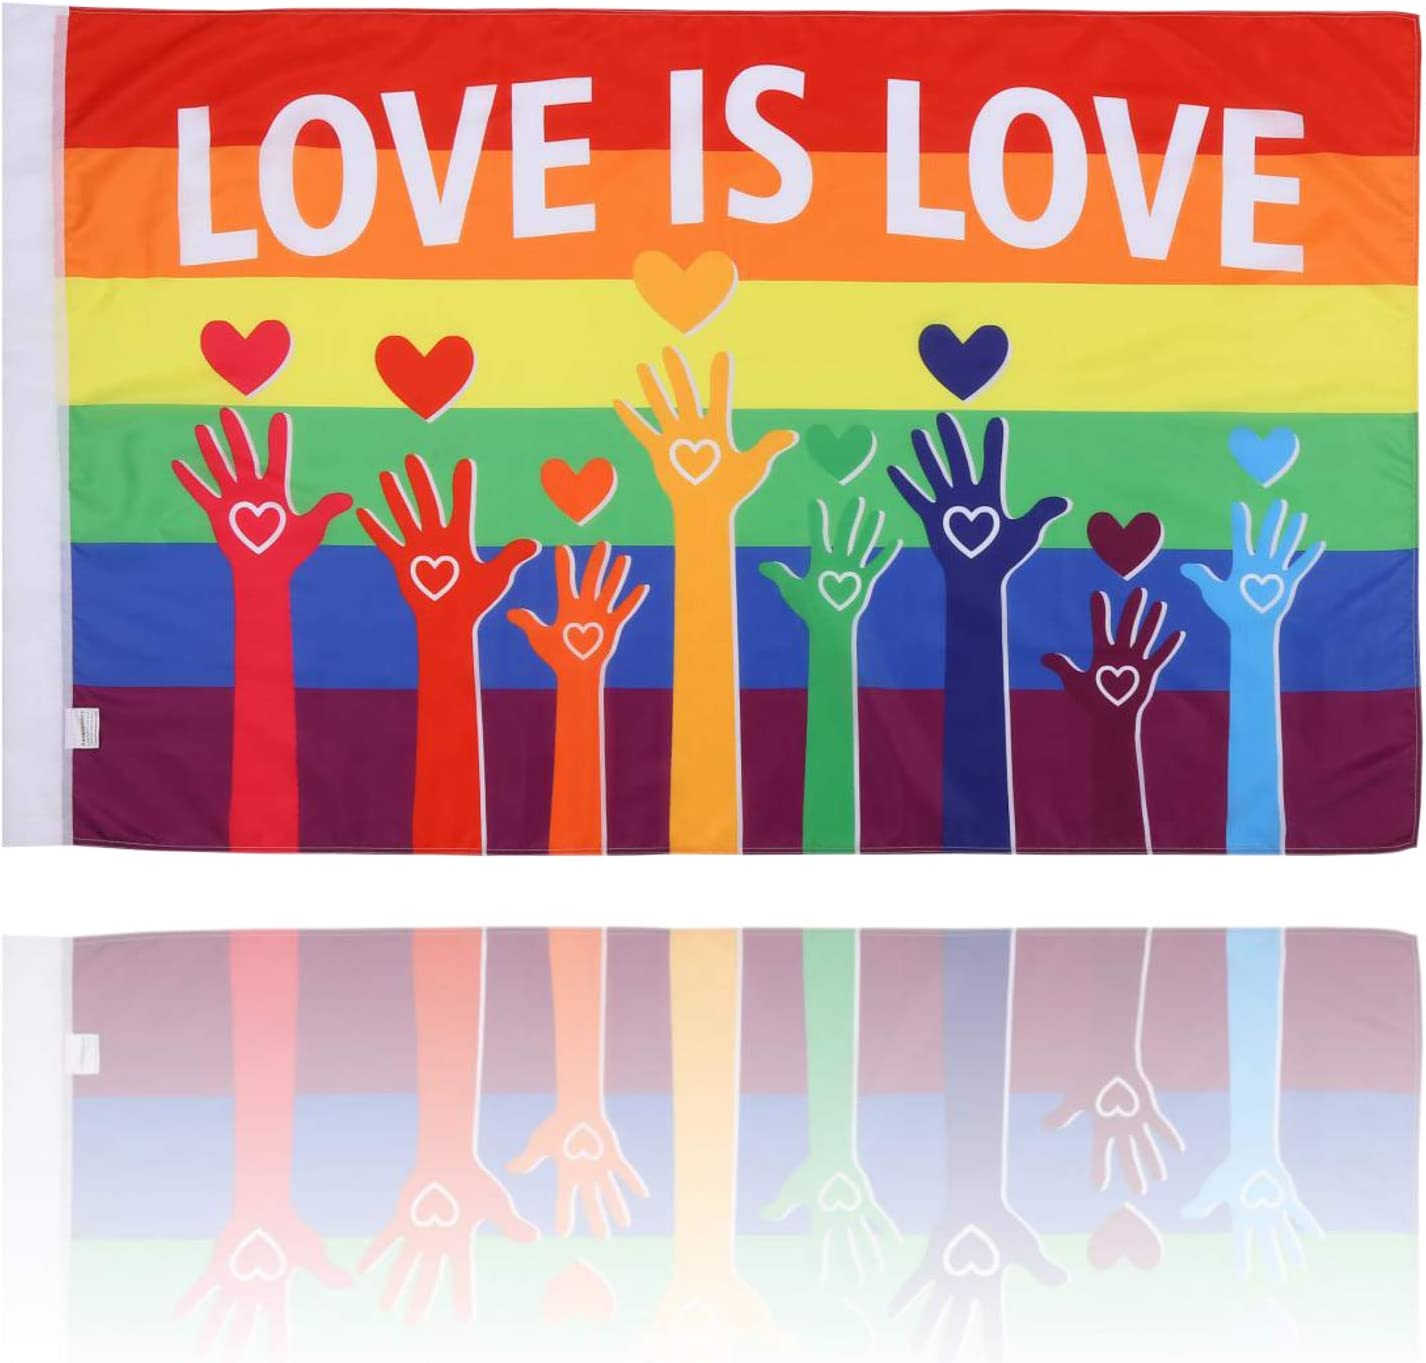 BATATADOCE Gay Pride Flag-3x5 Fts LGBT Pride Flags Garden House Outdoor Banner-Love is Love Flag